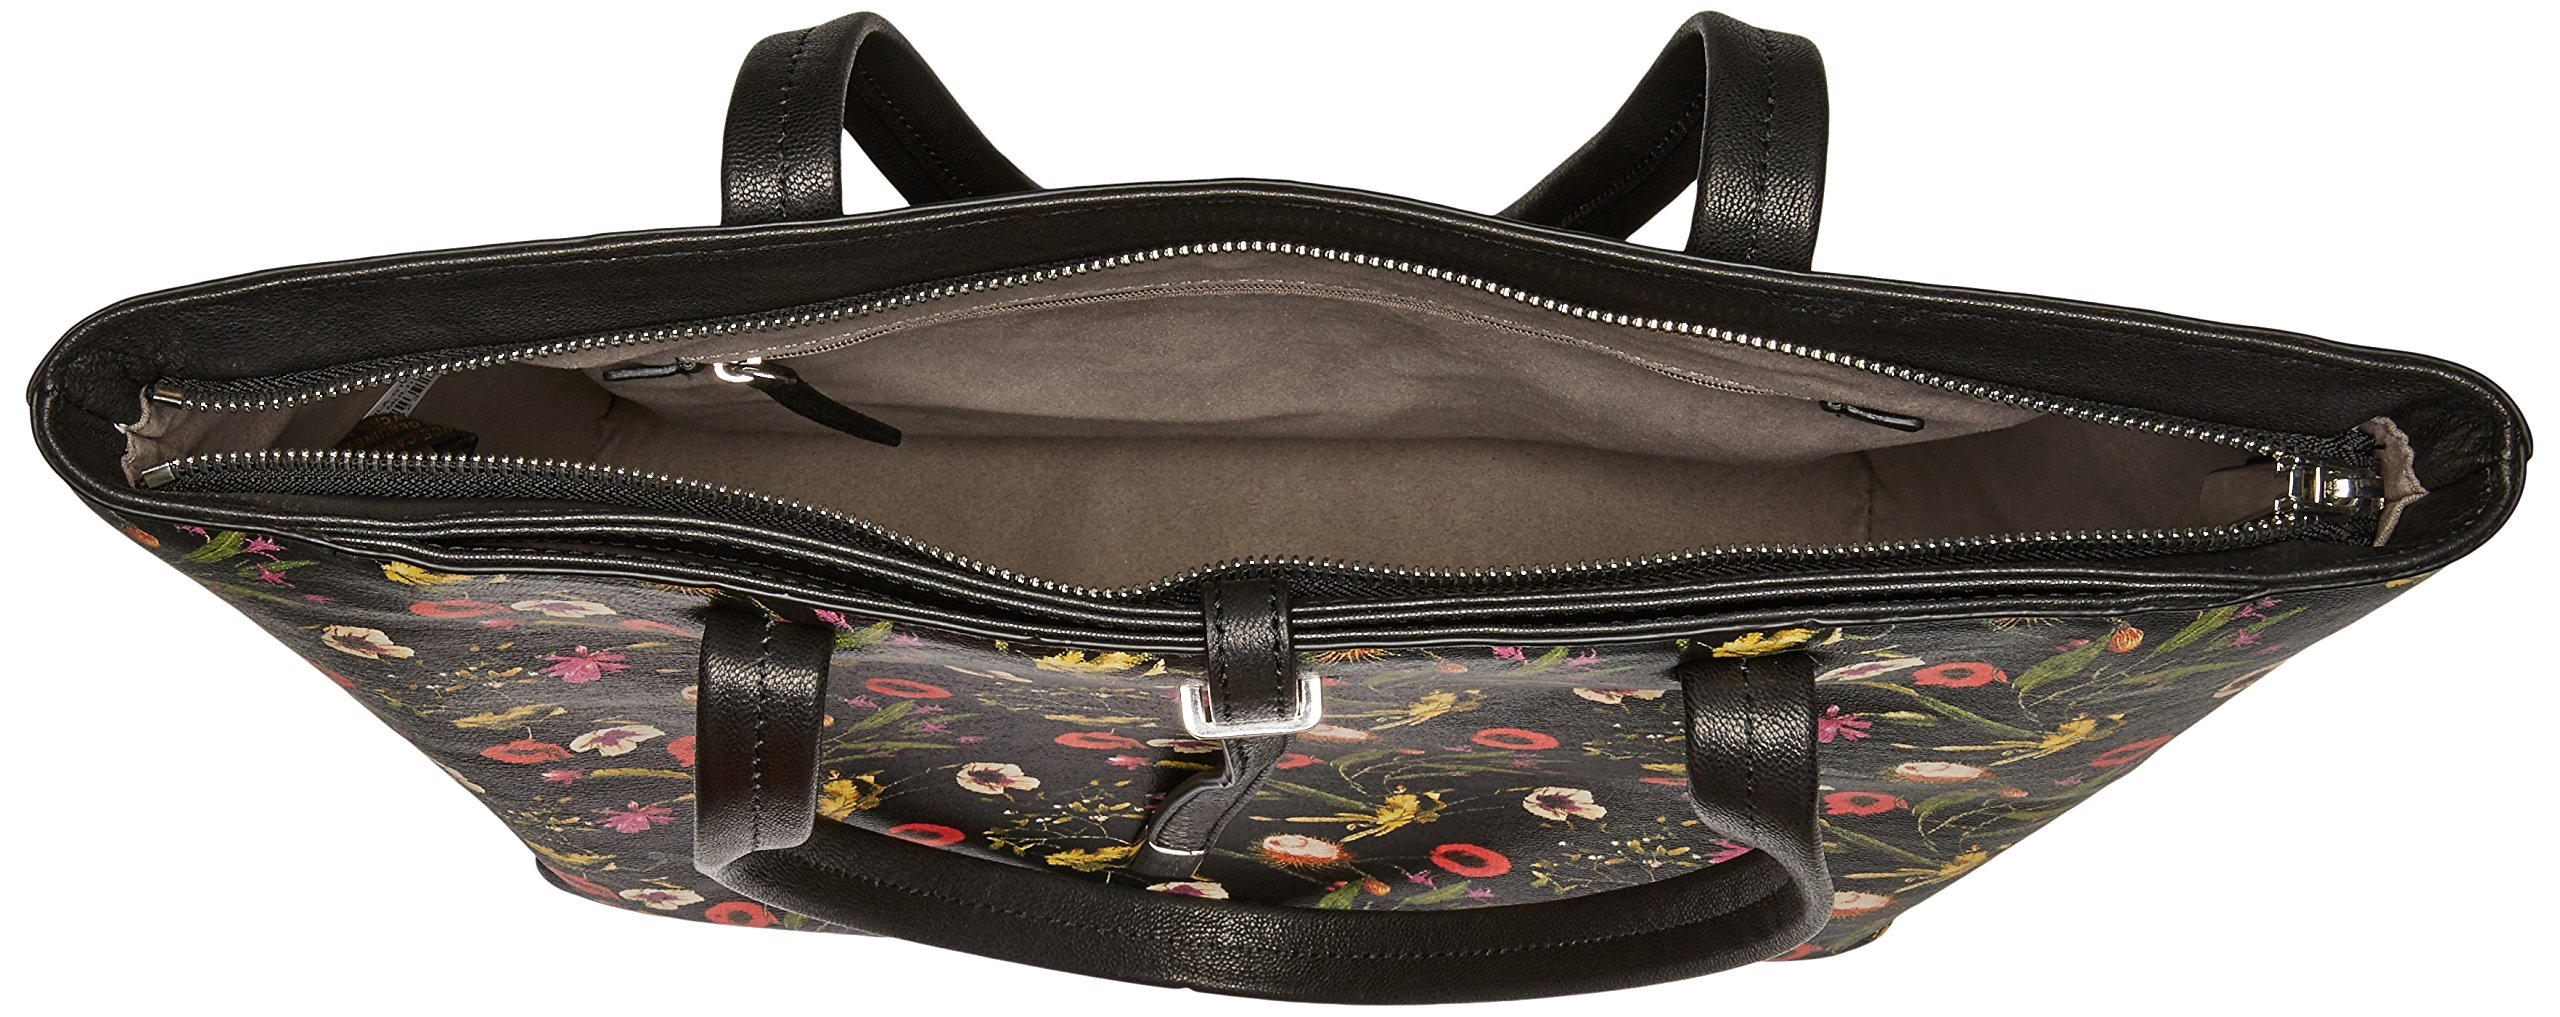 Vince Camuto Leila Small Tote, Black/Multi by Vince Camuto (Image #5)